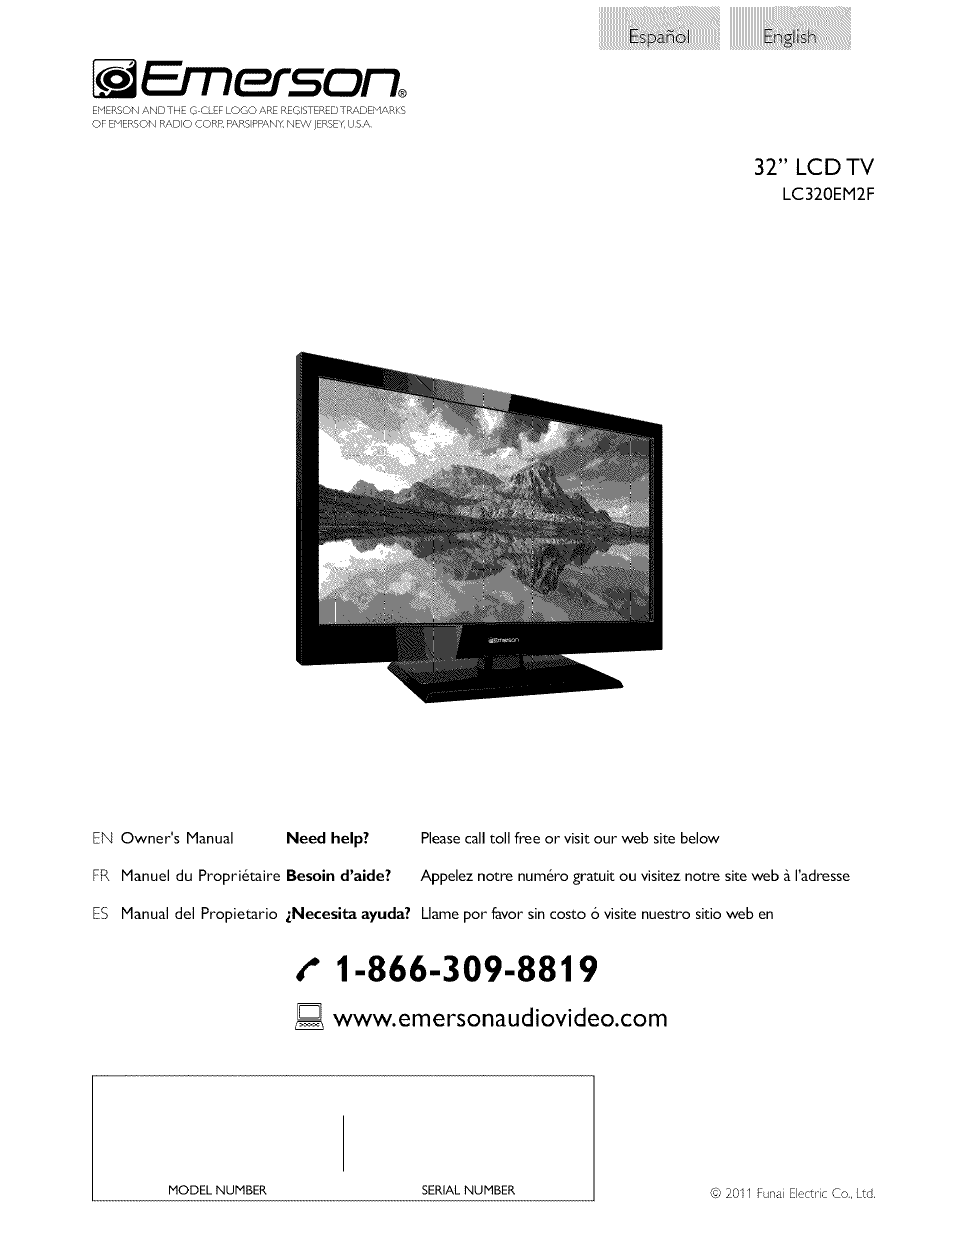 emerson lc320em2f owner s manual free pdf download 33 pages rh manualagent com Emerson Smart TV Manual 50 Inch Emerson TV Manual